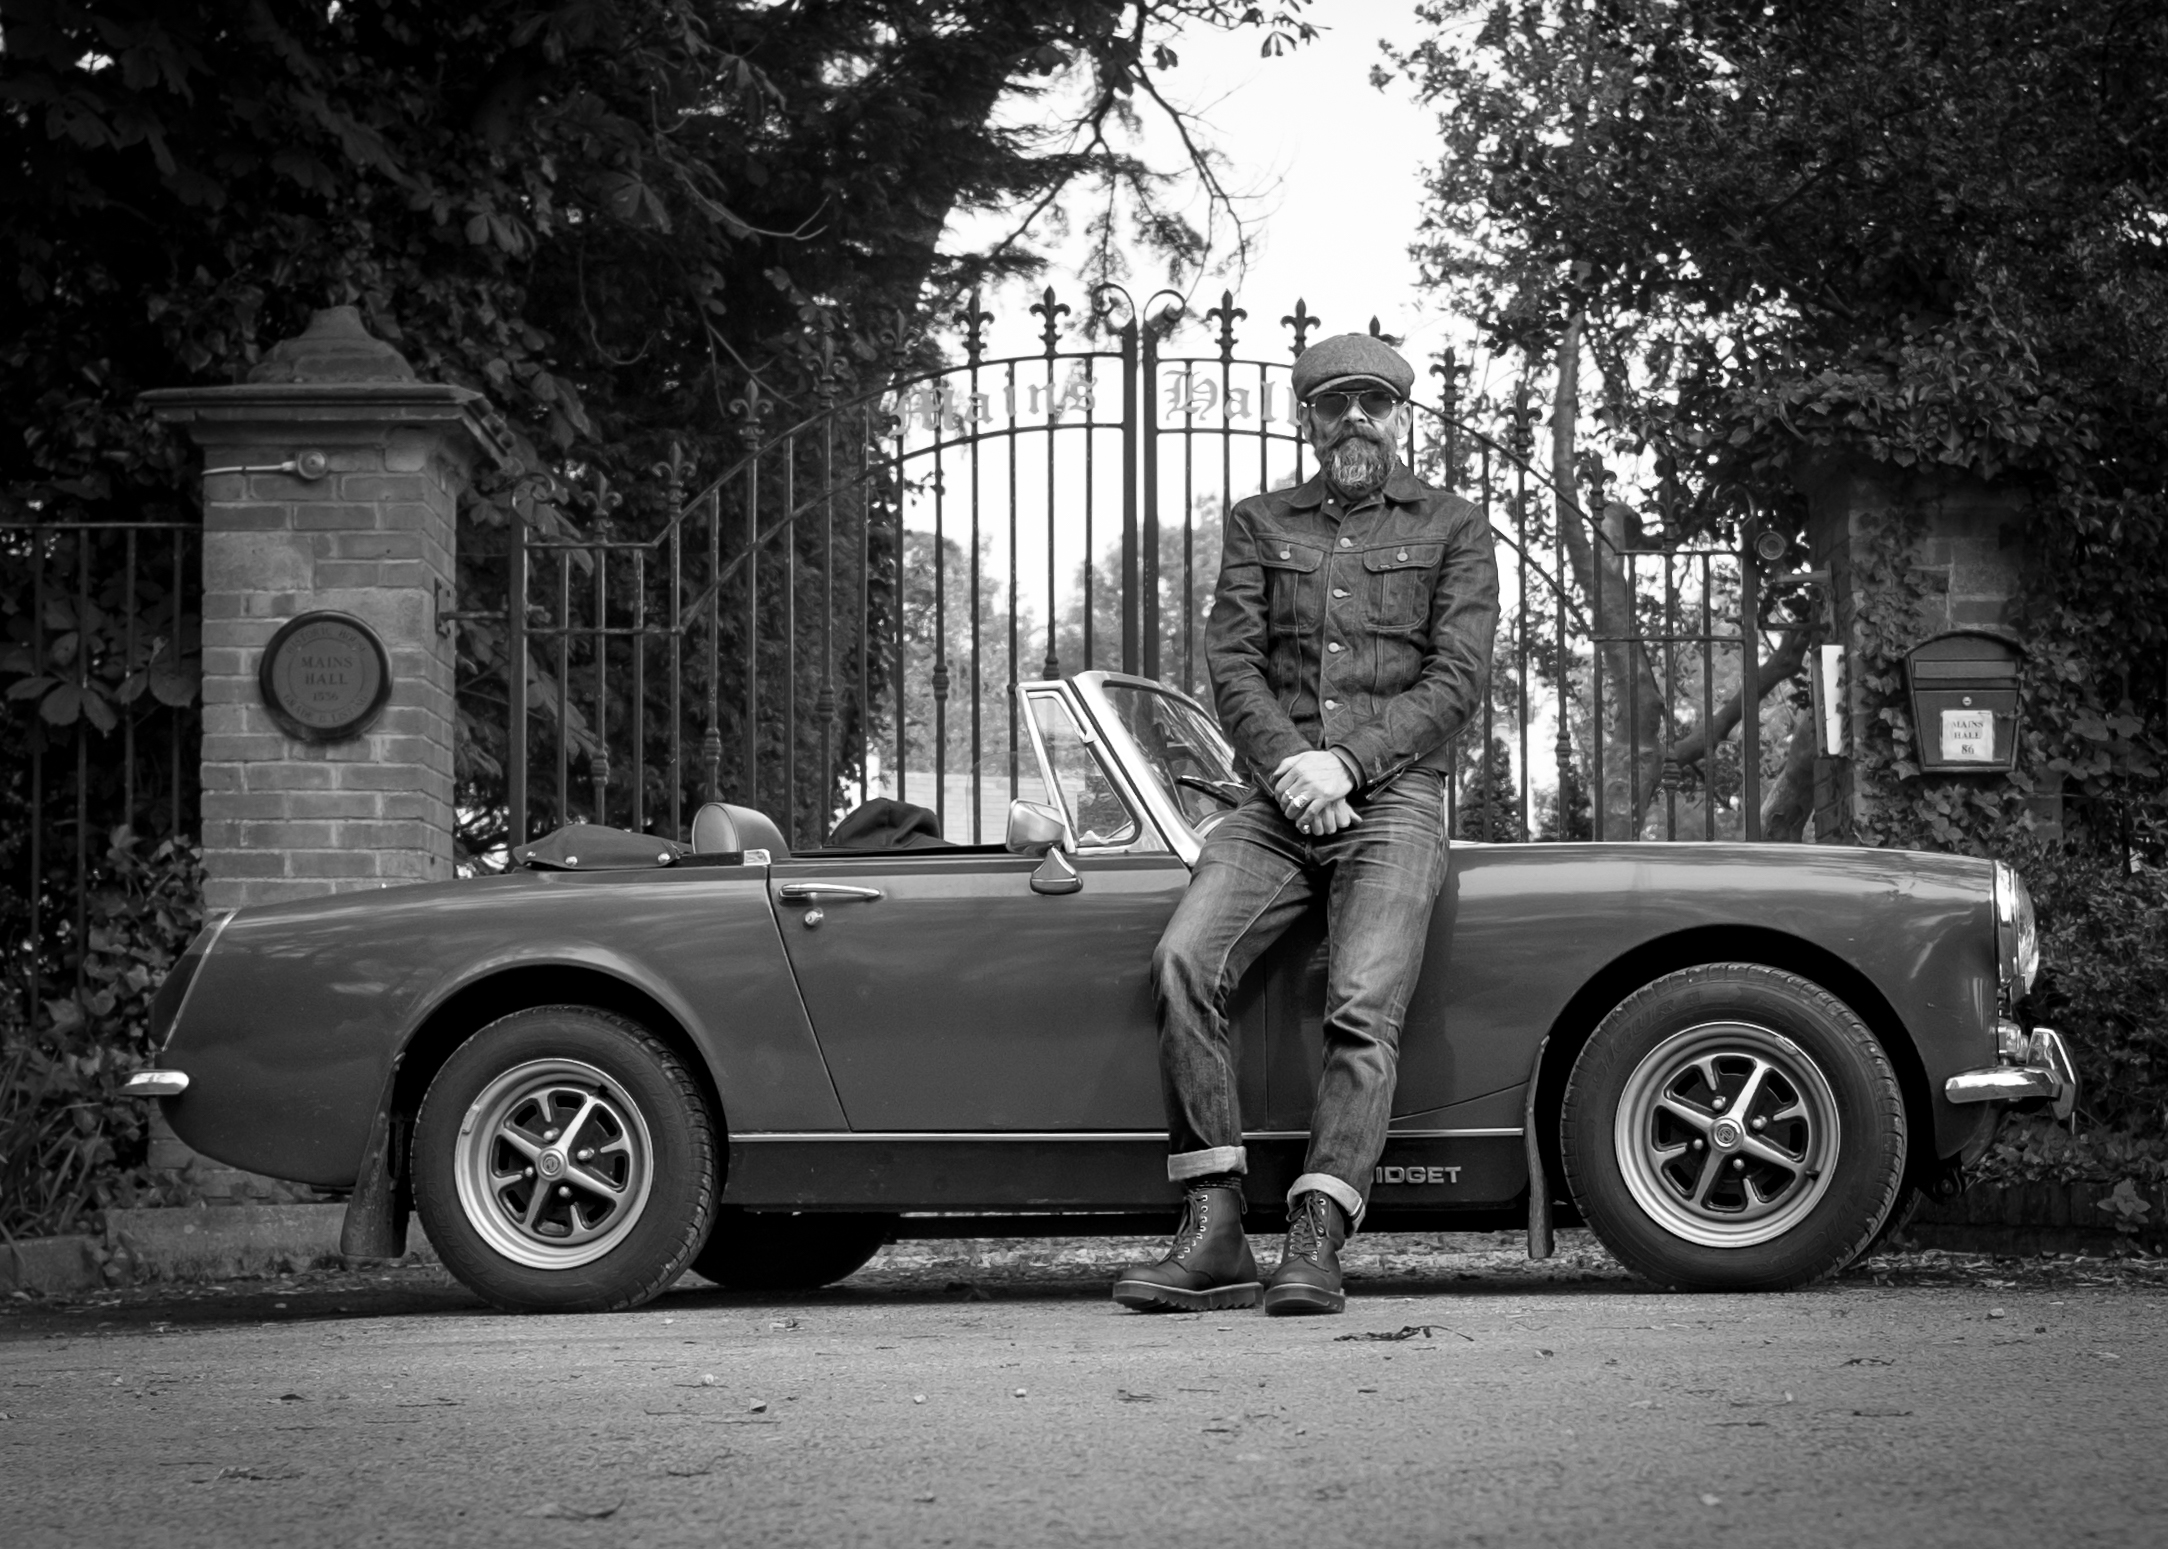 Tony and his 1972 MG Midget